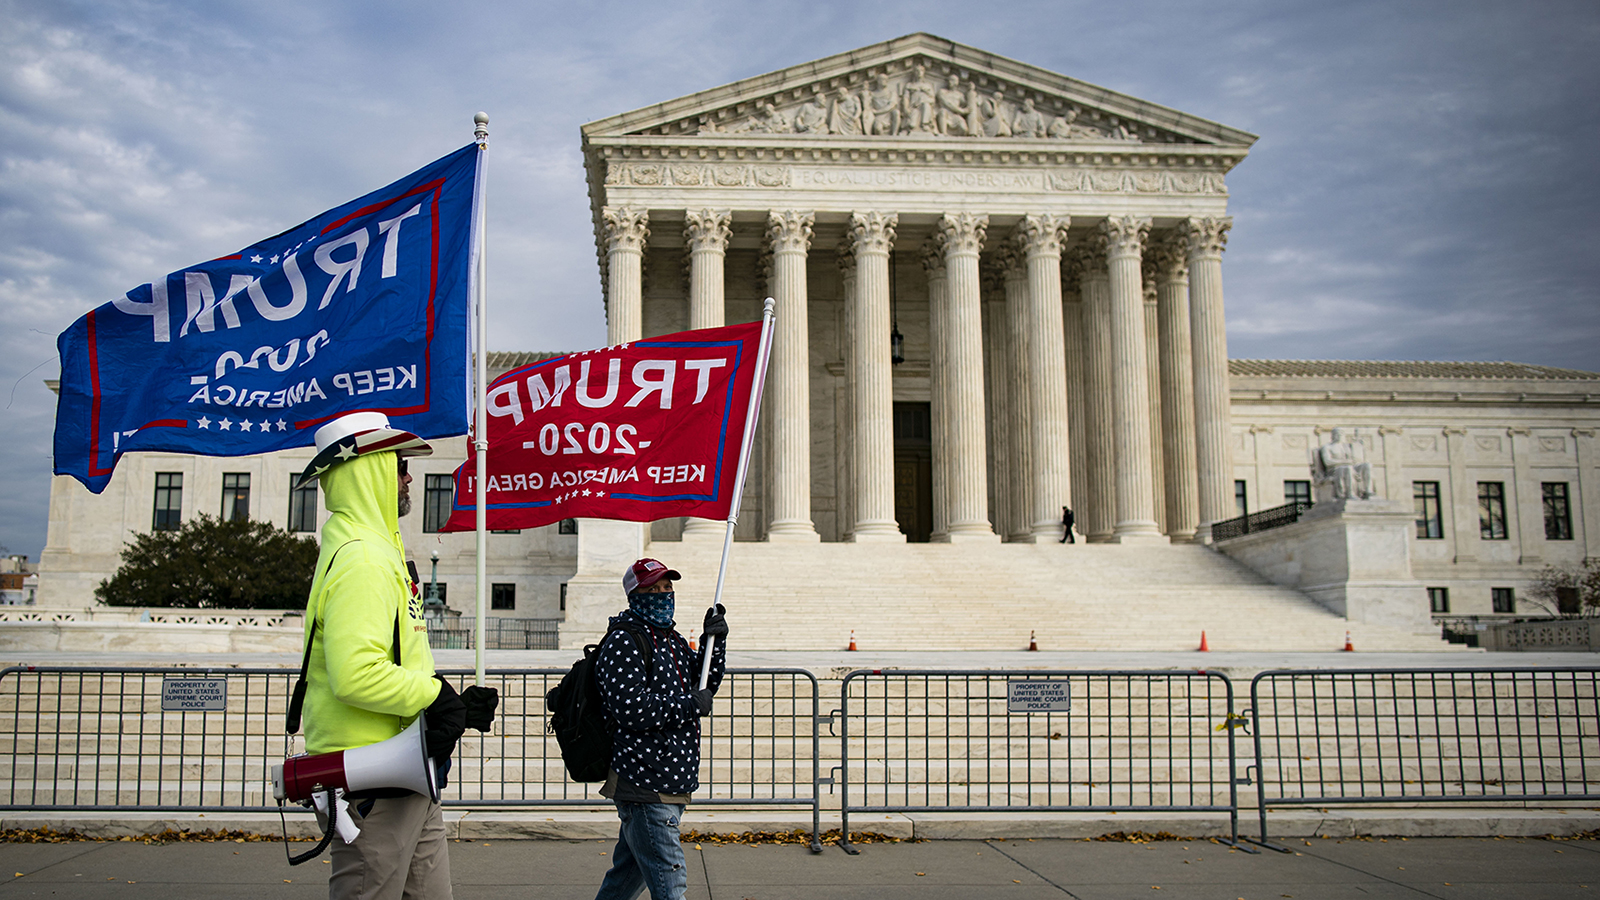 The 2020 election still hovers over the Supreme Court with another pending Pennsylvania case